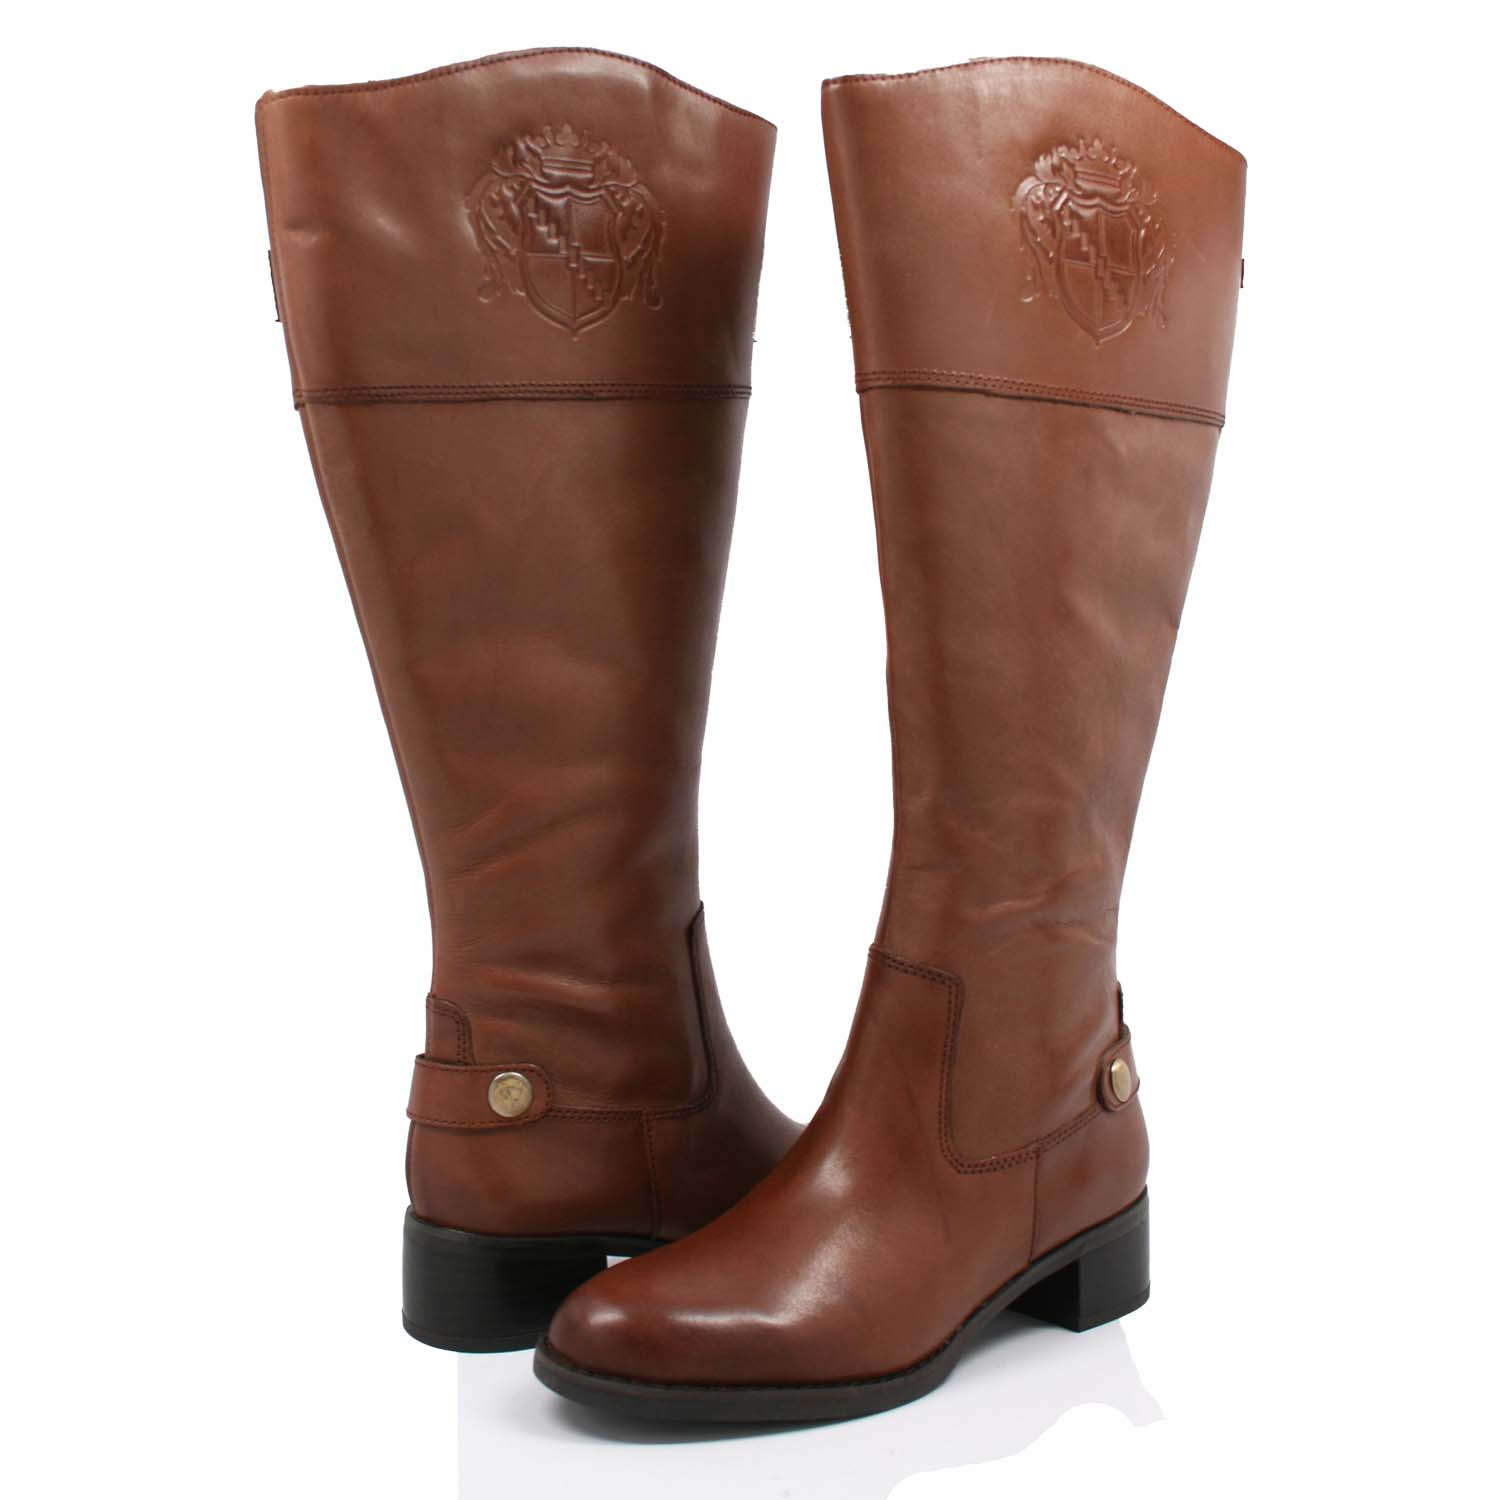 Franco Sarto Women s Chip Wide Calf Riding Boots Banana Bread Le ... bcf4bd4ed4